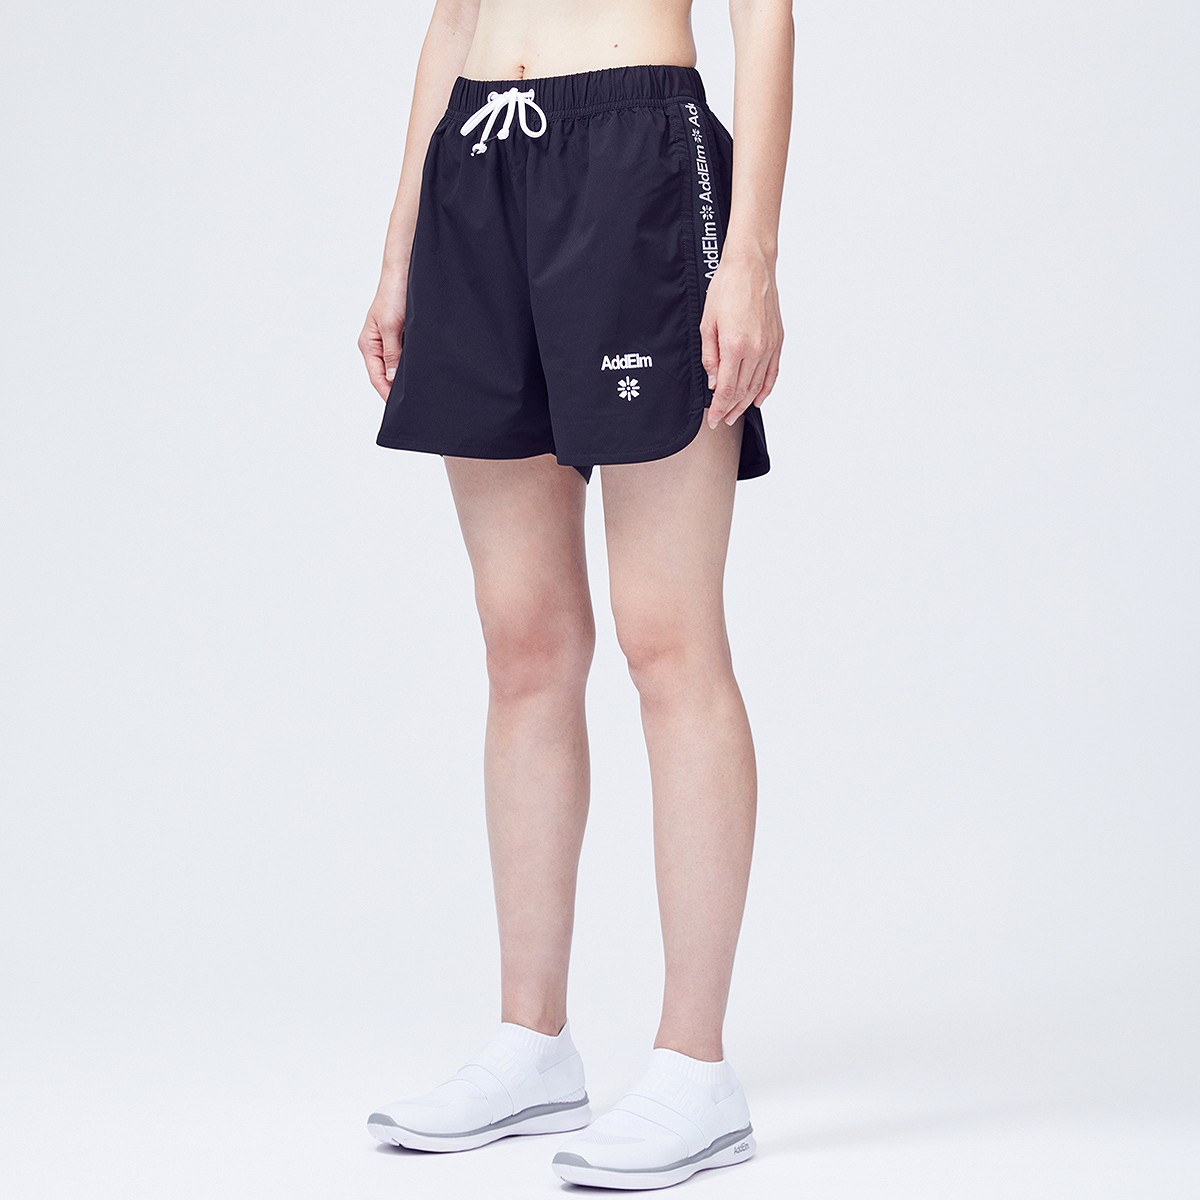 【add.03】BOARD SHORTS レディース